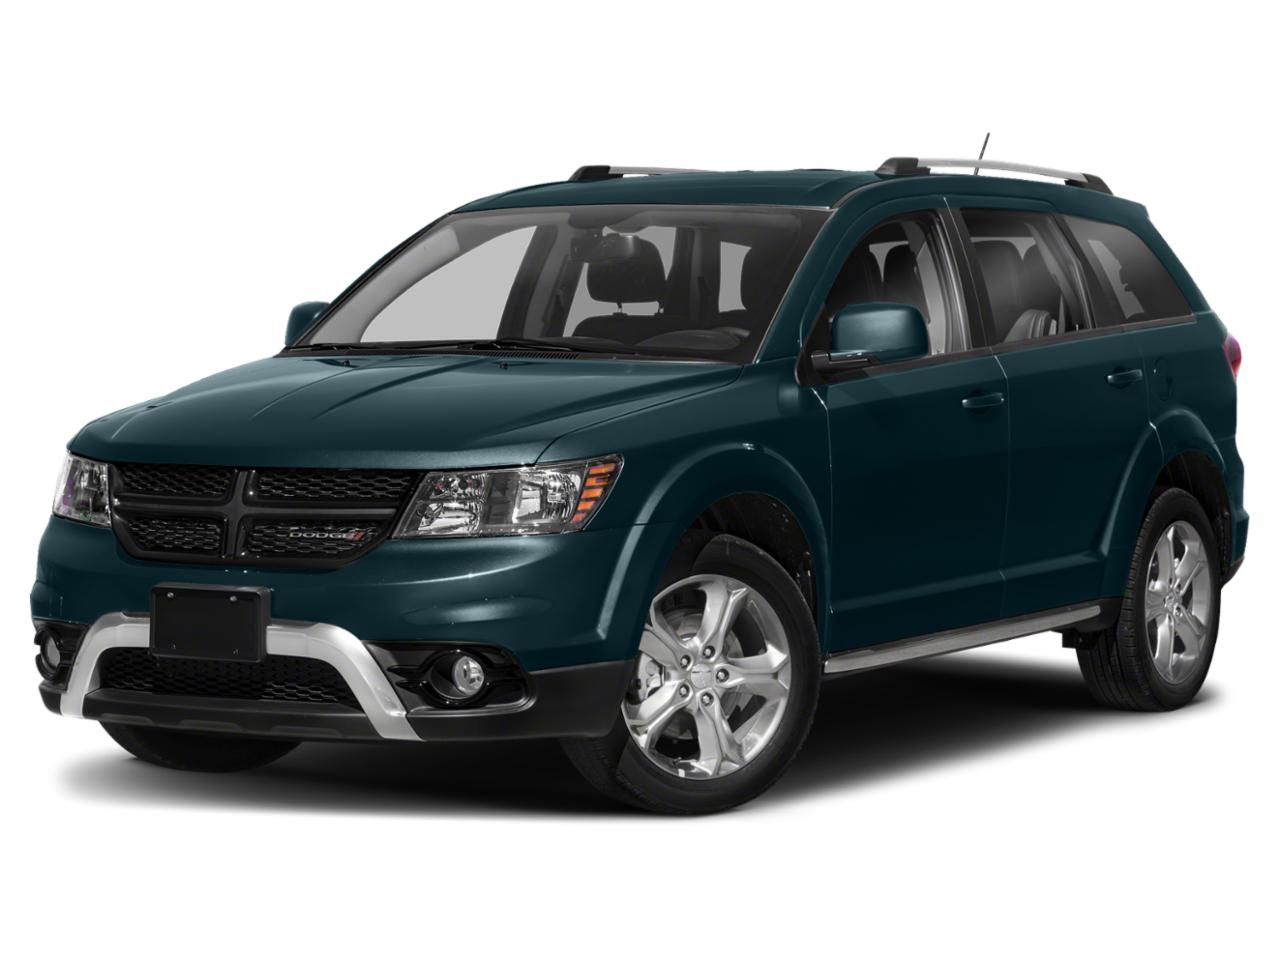 2018 Dodge Journey Vehicle Photo in Greensboro, NC 27405